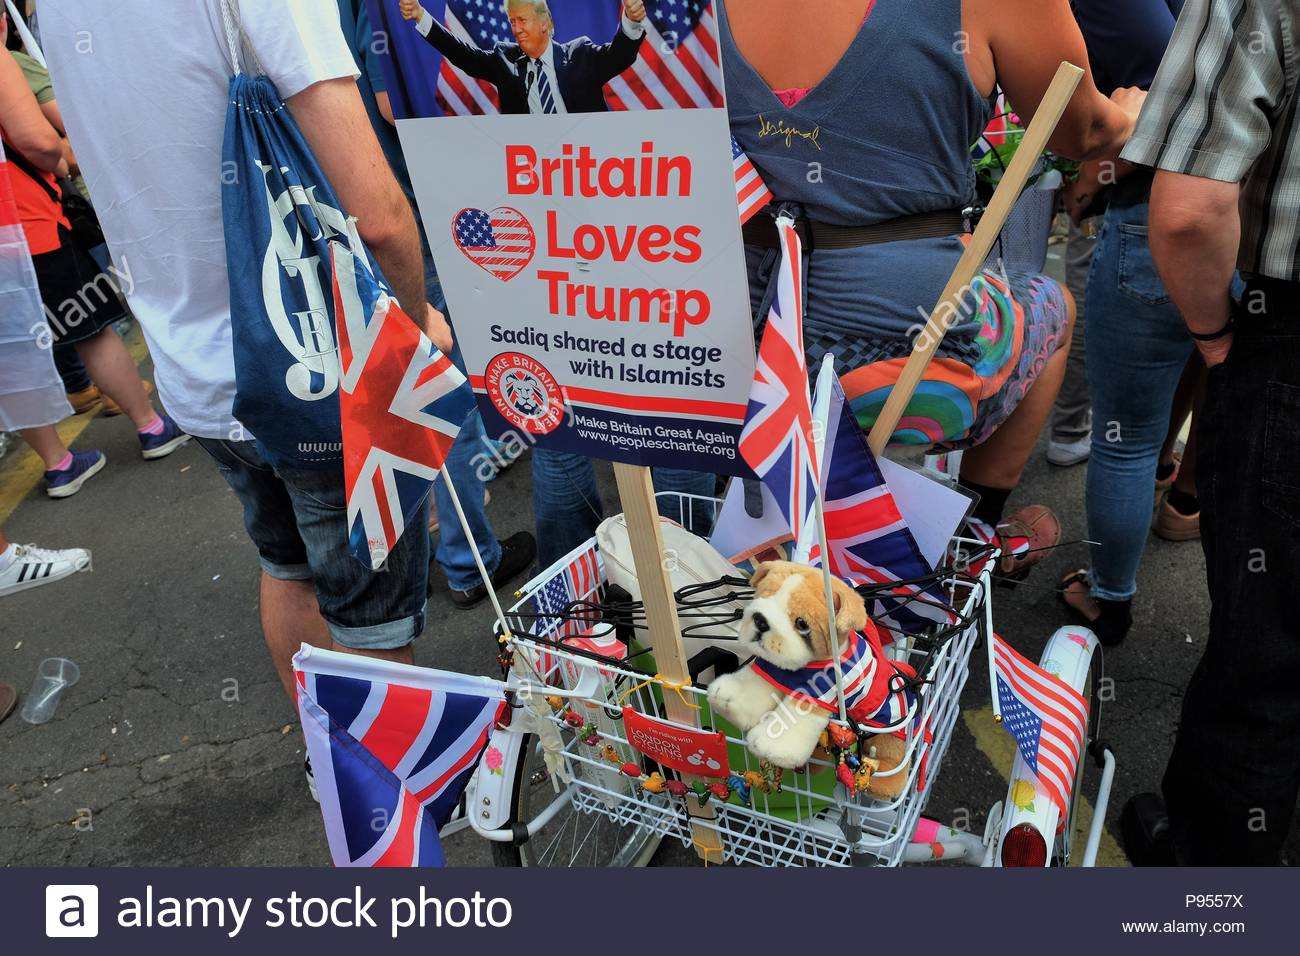 London, United Kingdom. 14th July, 2018. A sign reading 'Britain loves Trump' is held as hundreds of Trump supporters gather outside the US embassy in London, UK on July 14, 2018 for a Welcoming Trump to London rally in the British capital. Protesters called for the release of Tommy Robinson the founder of the English Defence League. (c) copyright Credit: CrowdSpark/Alamy Live News - Stock Image